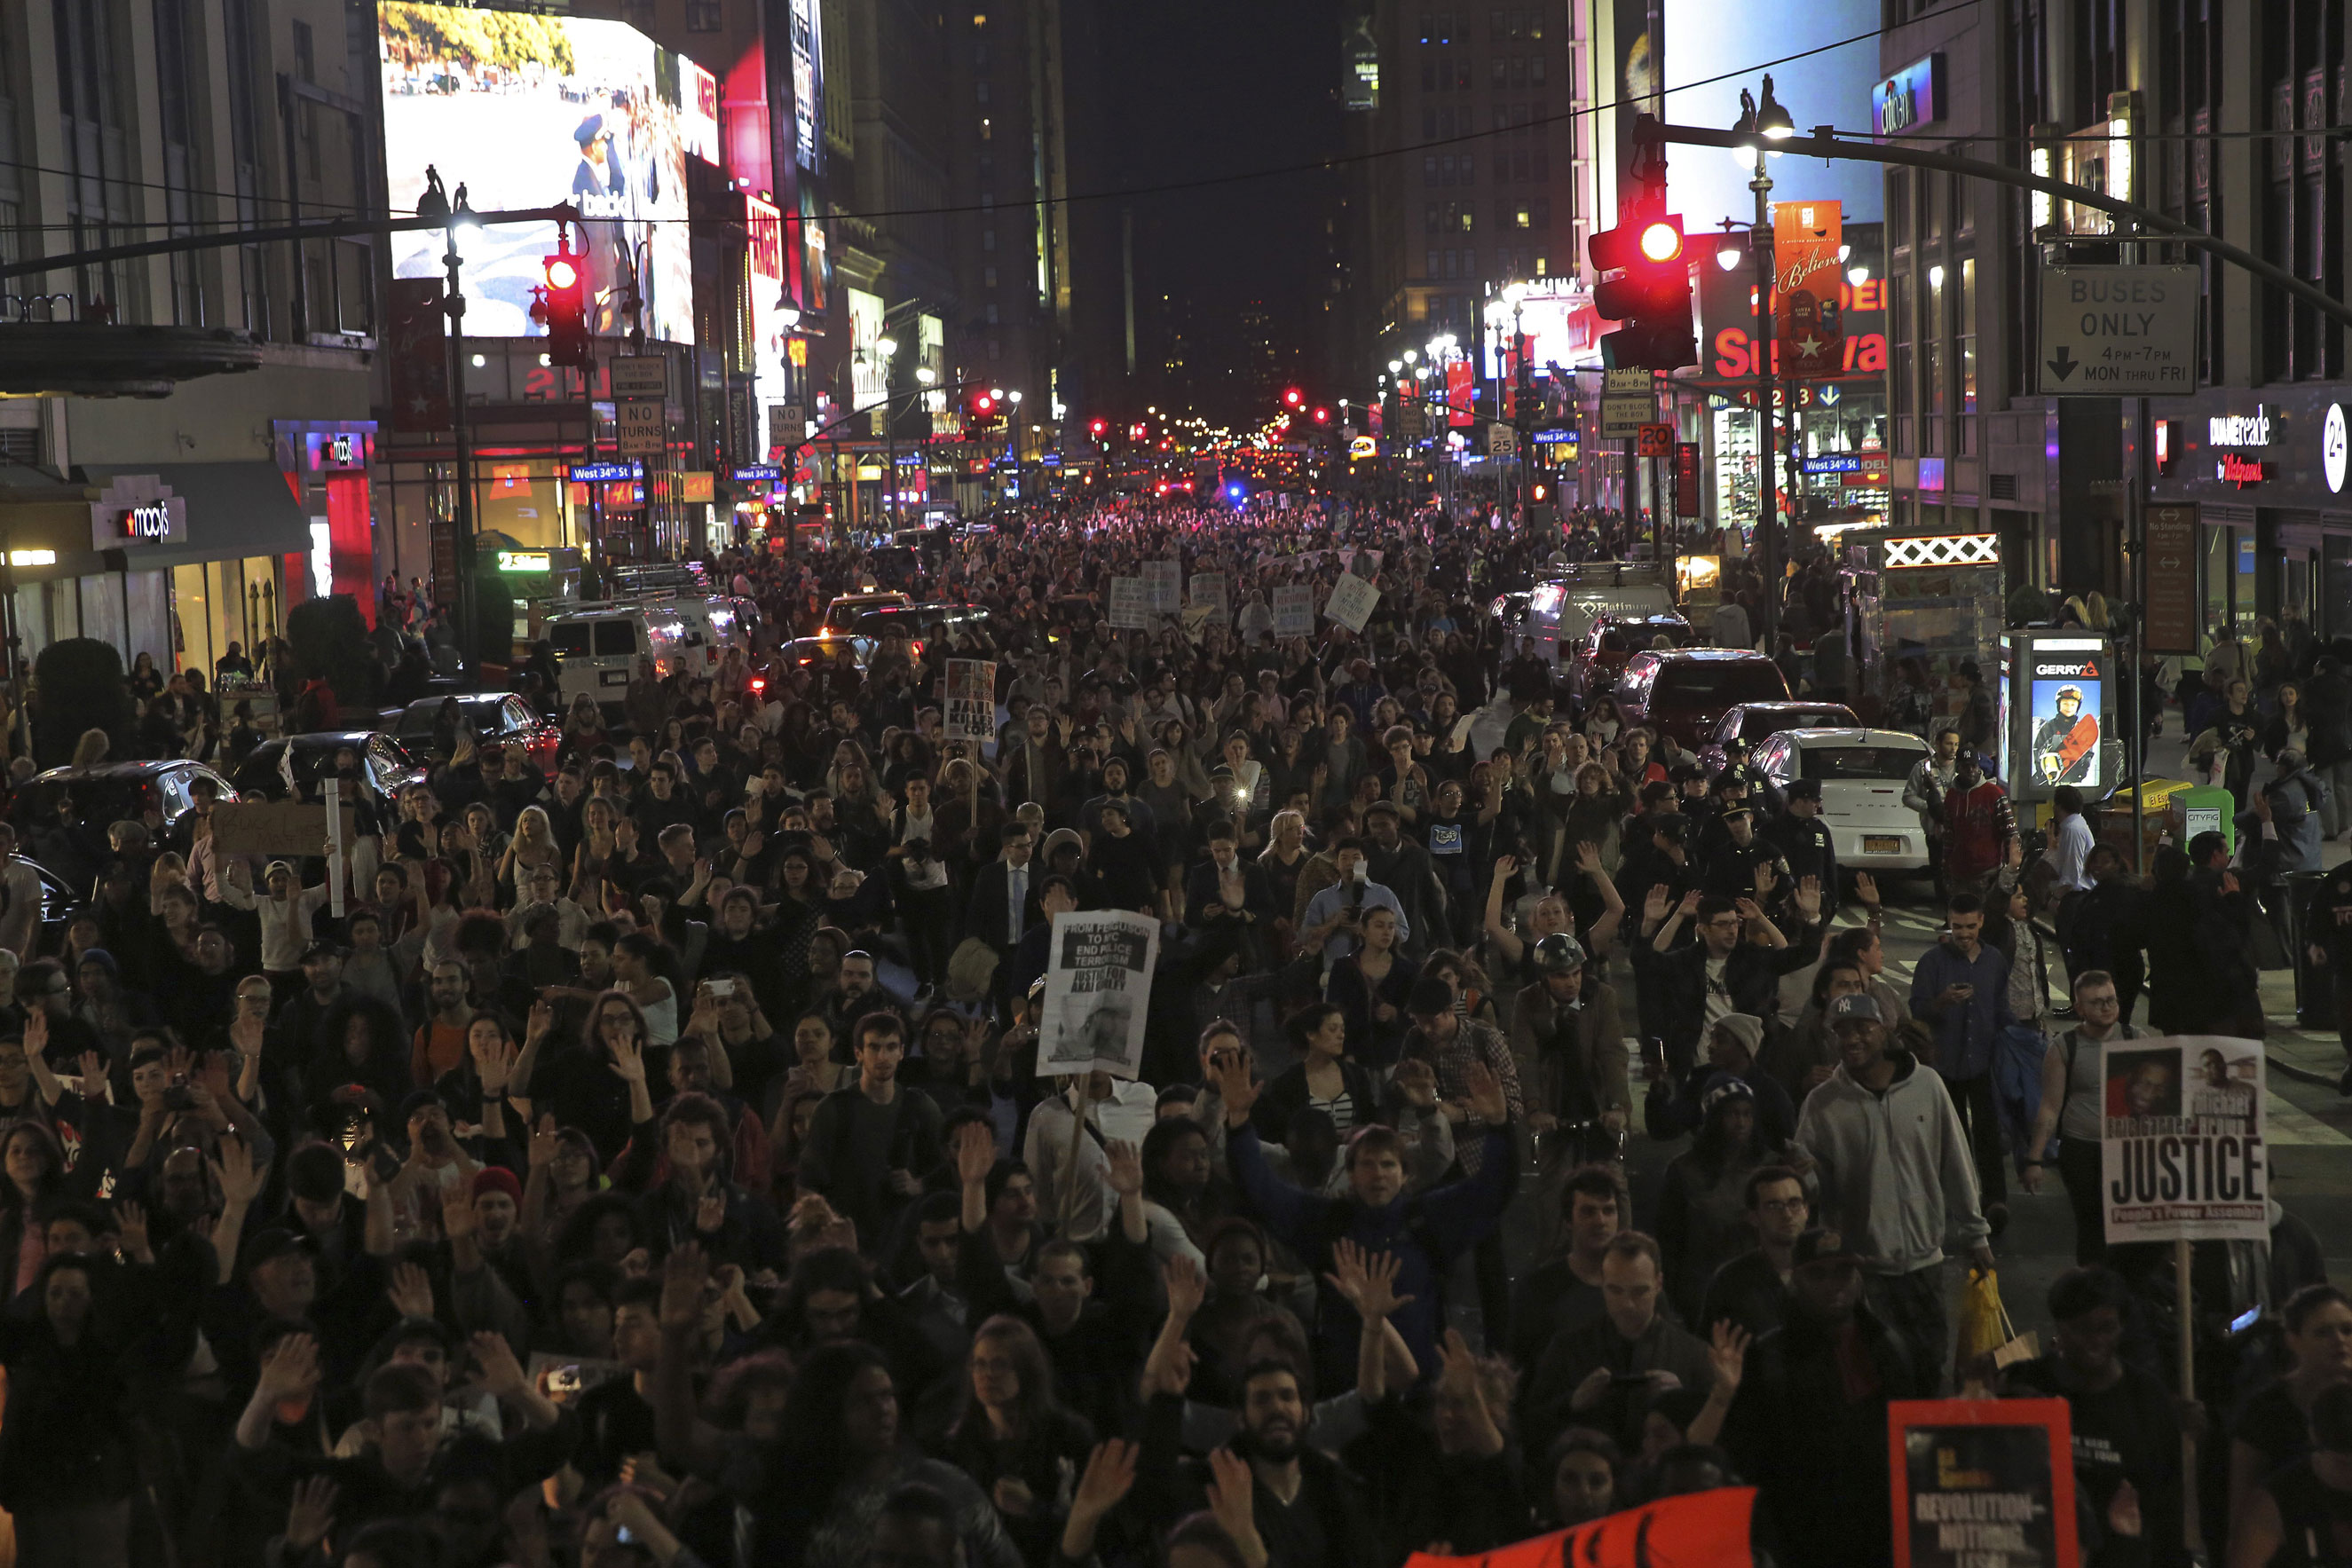 Protesters march near Times Square in New York City on Nov. 24, 2014.